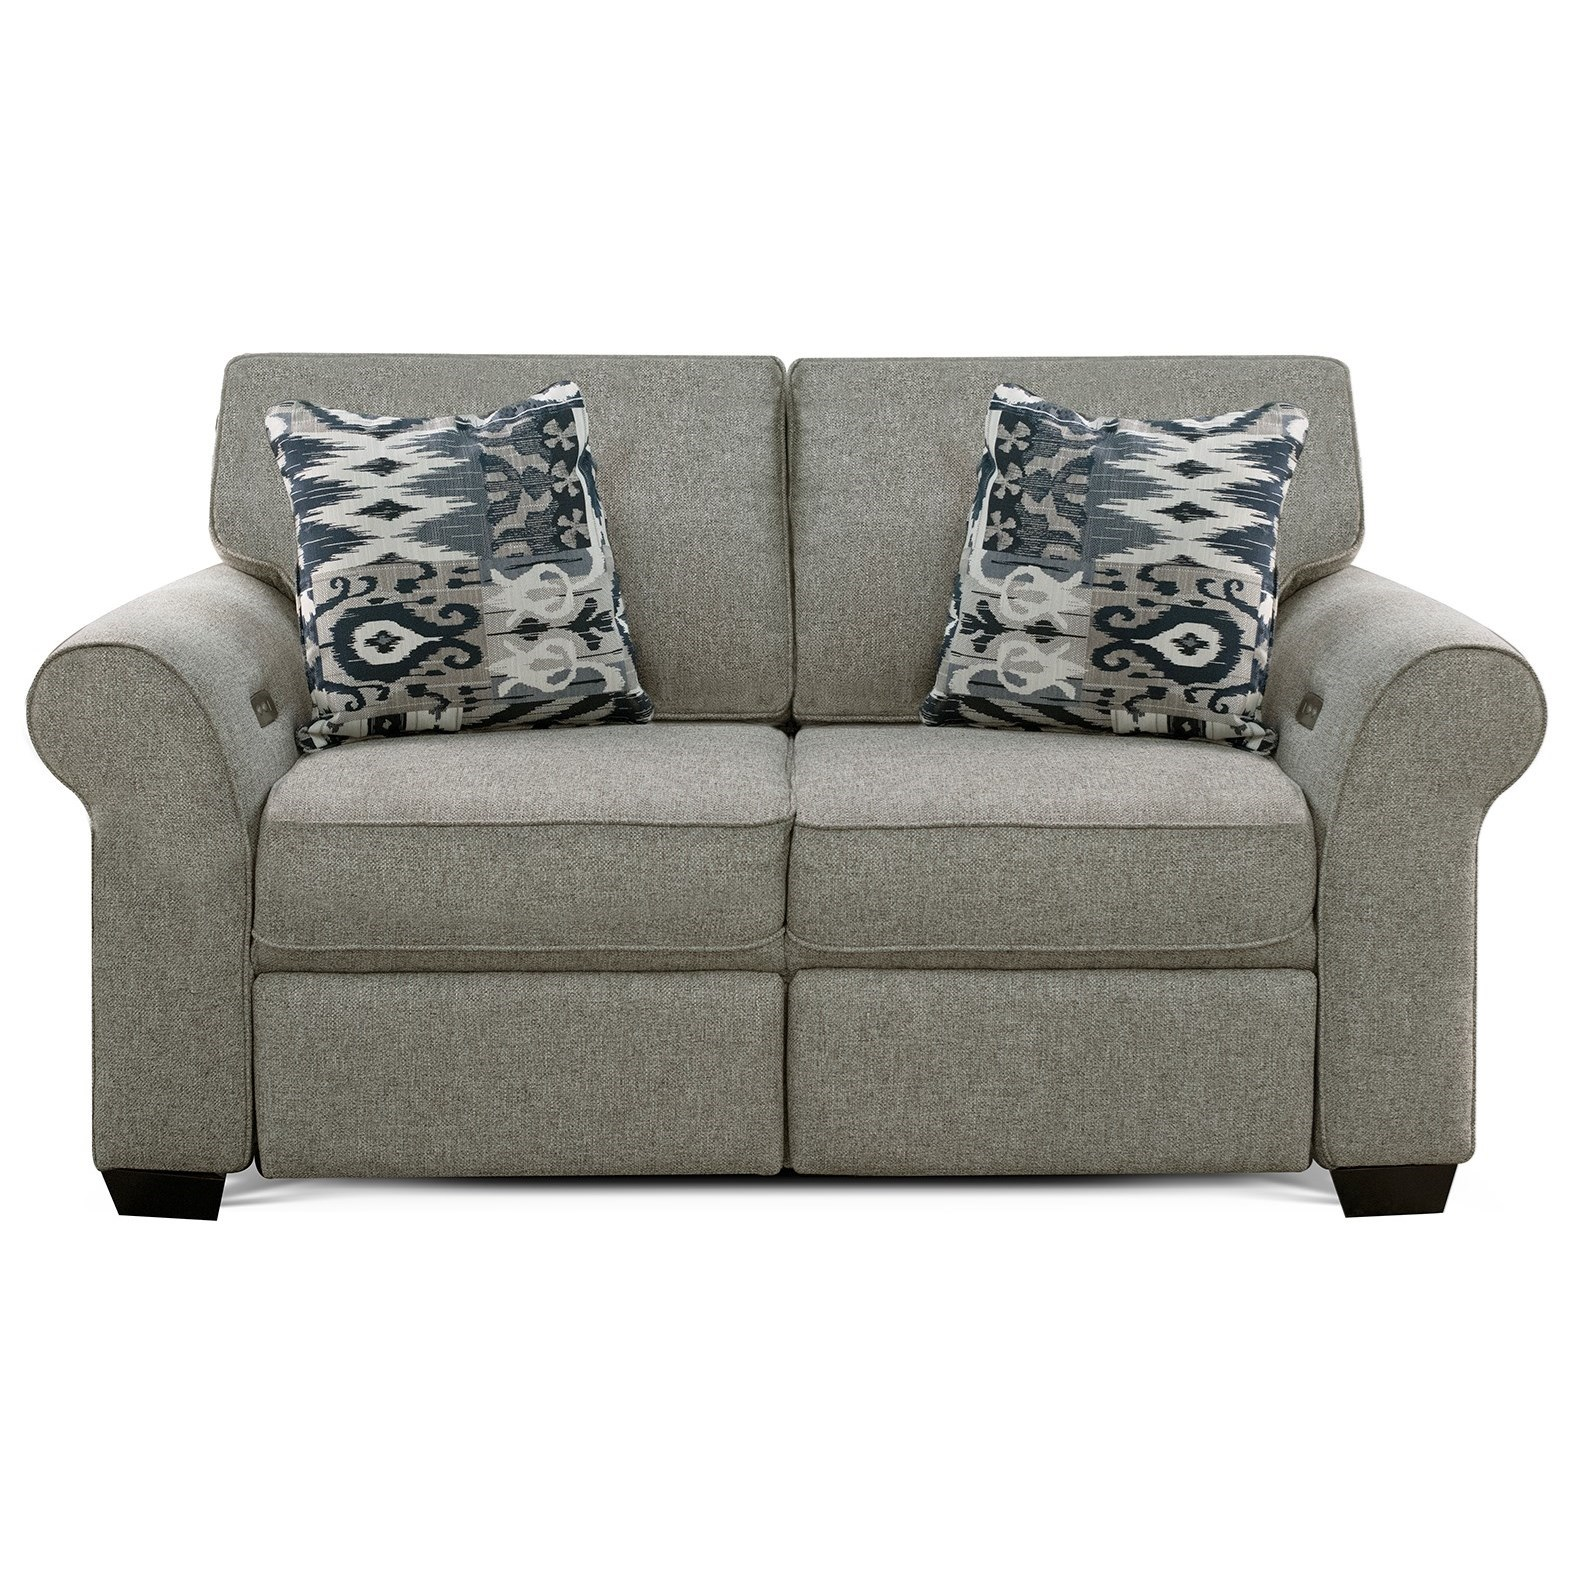 Wallace Loveseat with Power Ottoman by England at Belfort Furniture